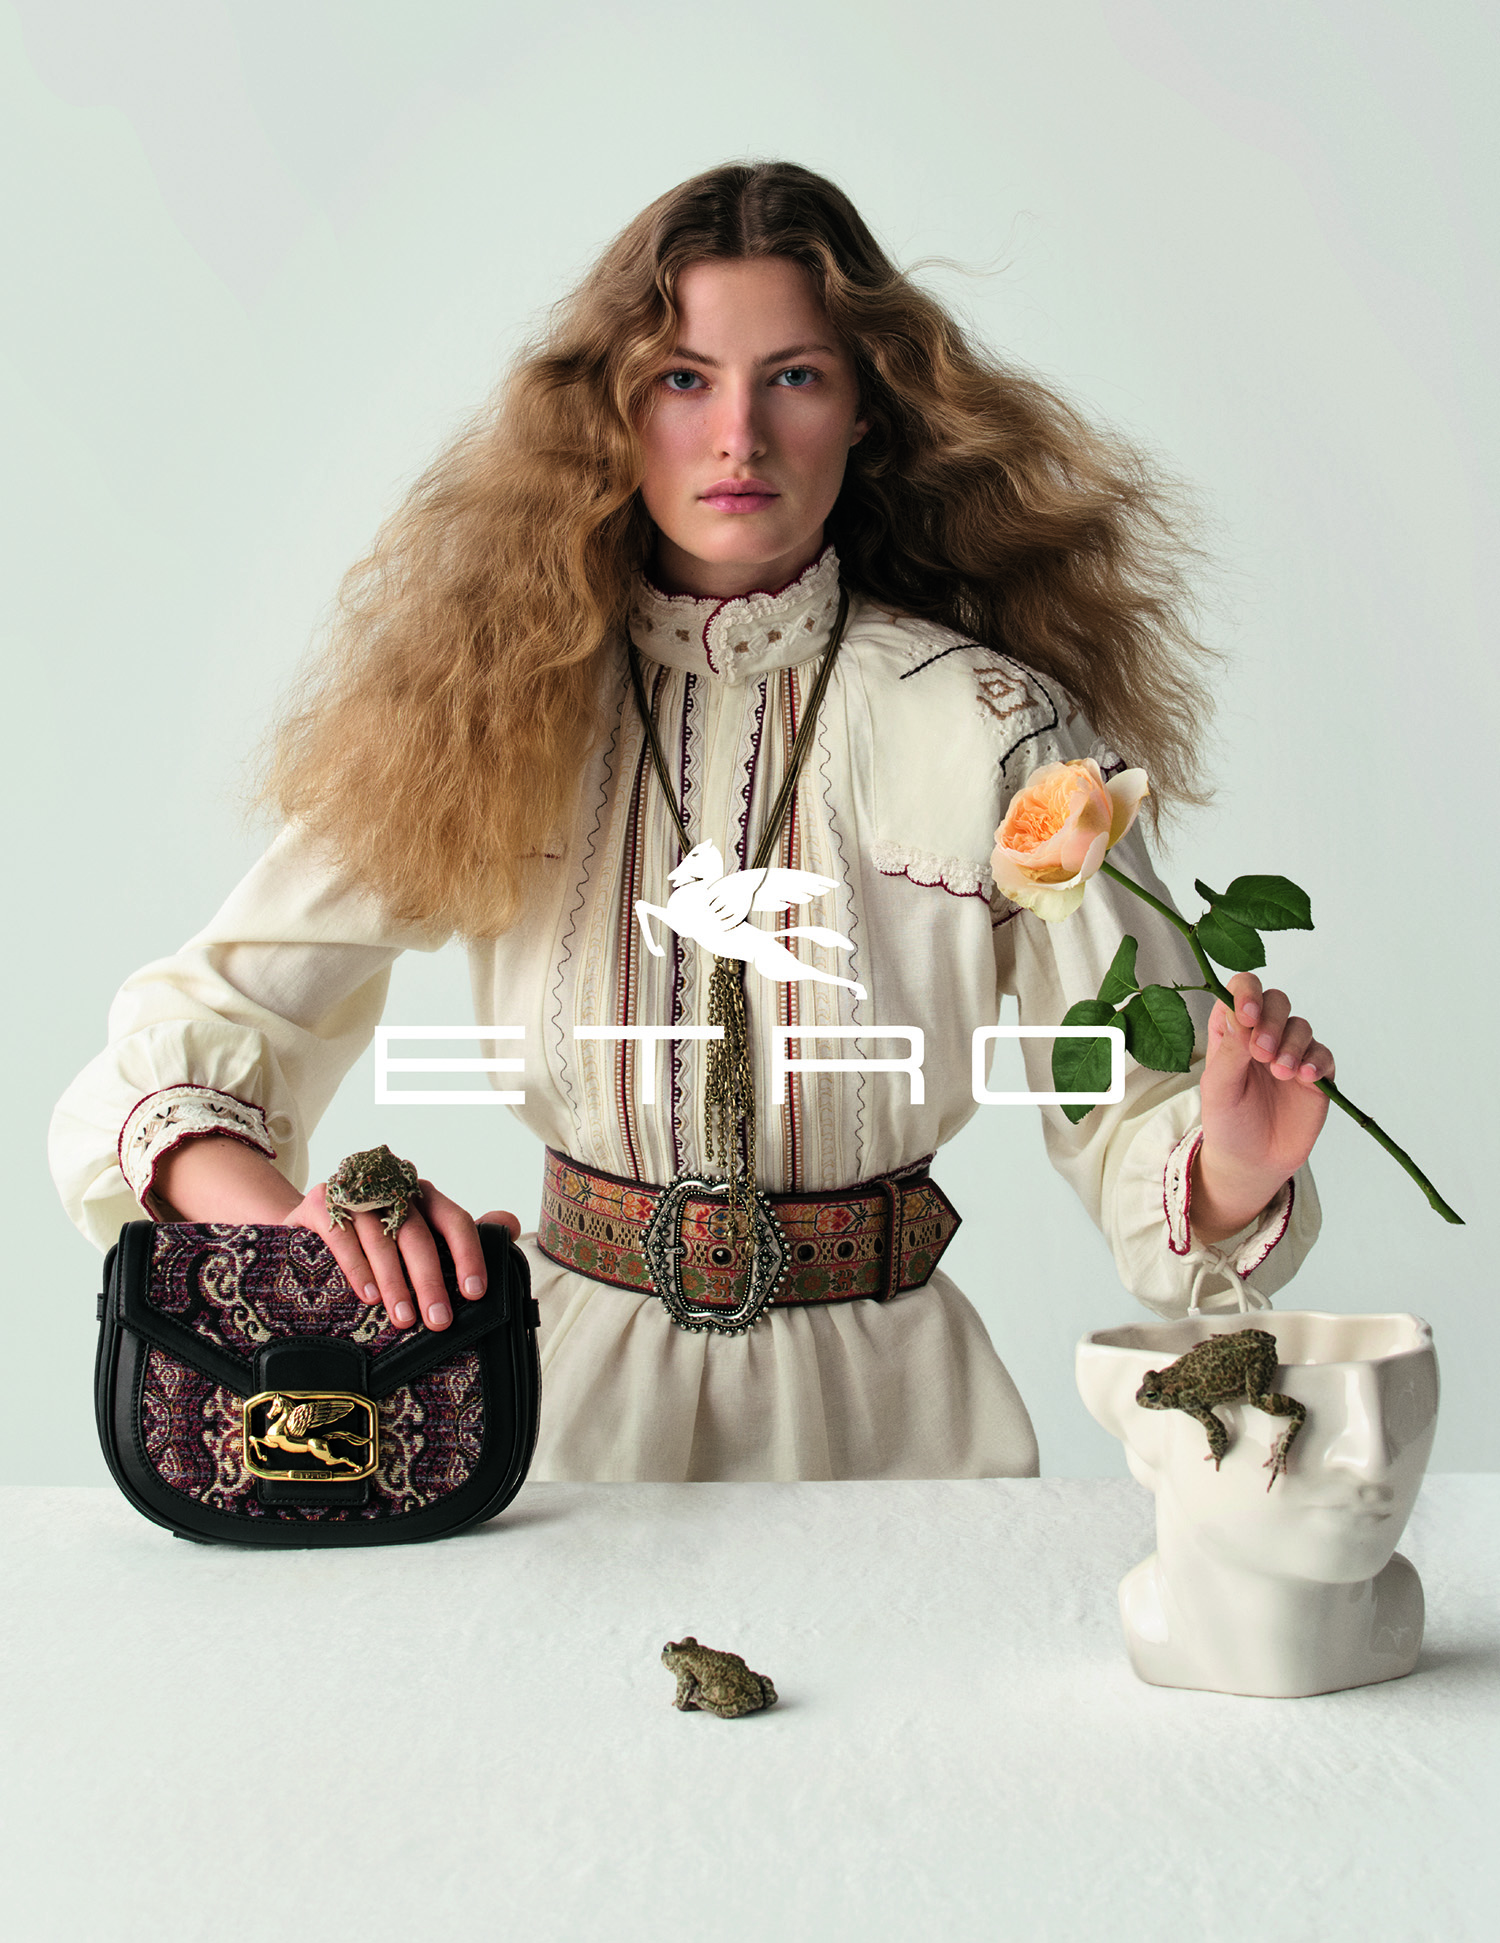 Etro 'We Are All One' Fall 2020 Ad Campaign Film & Photos